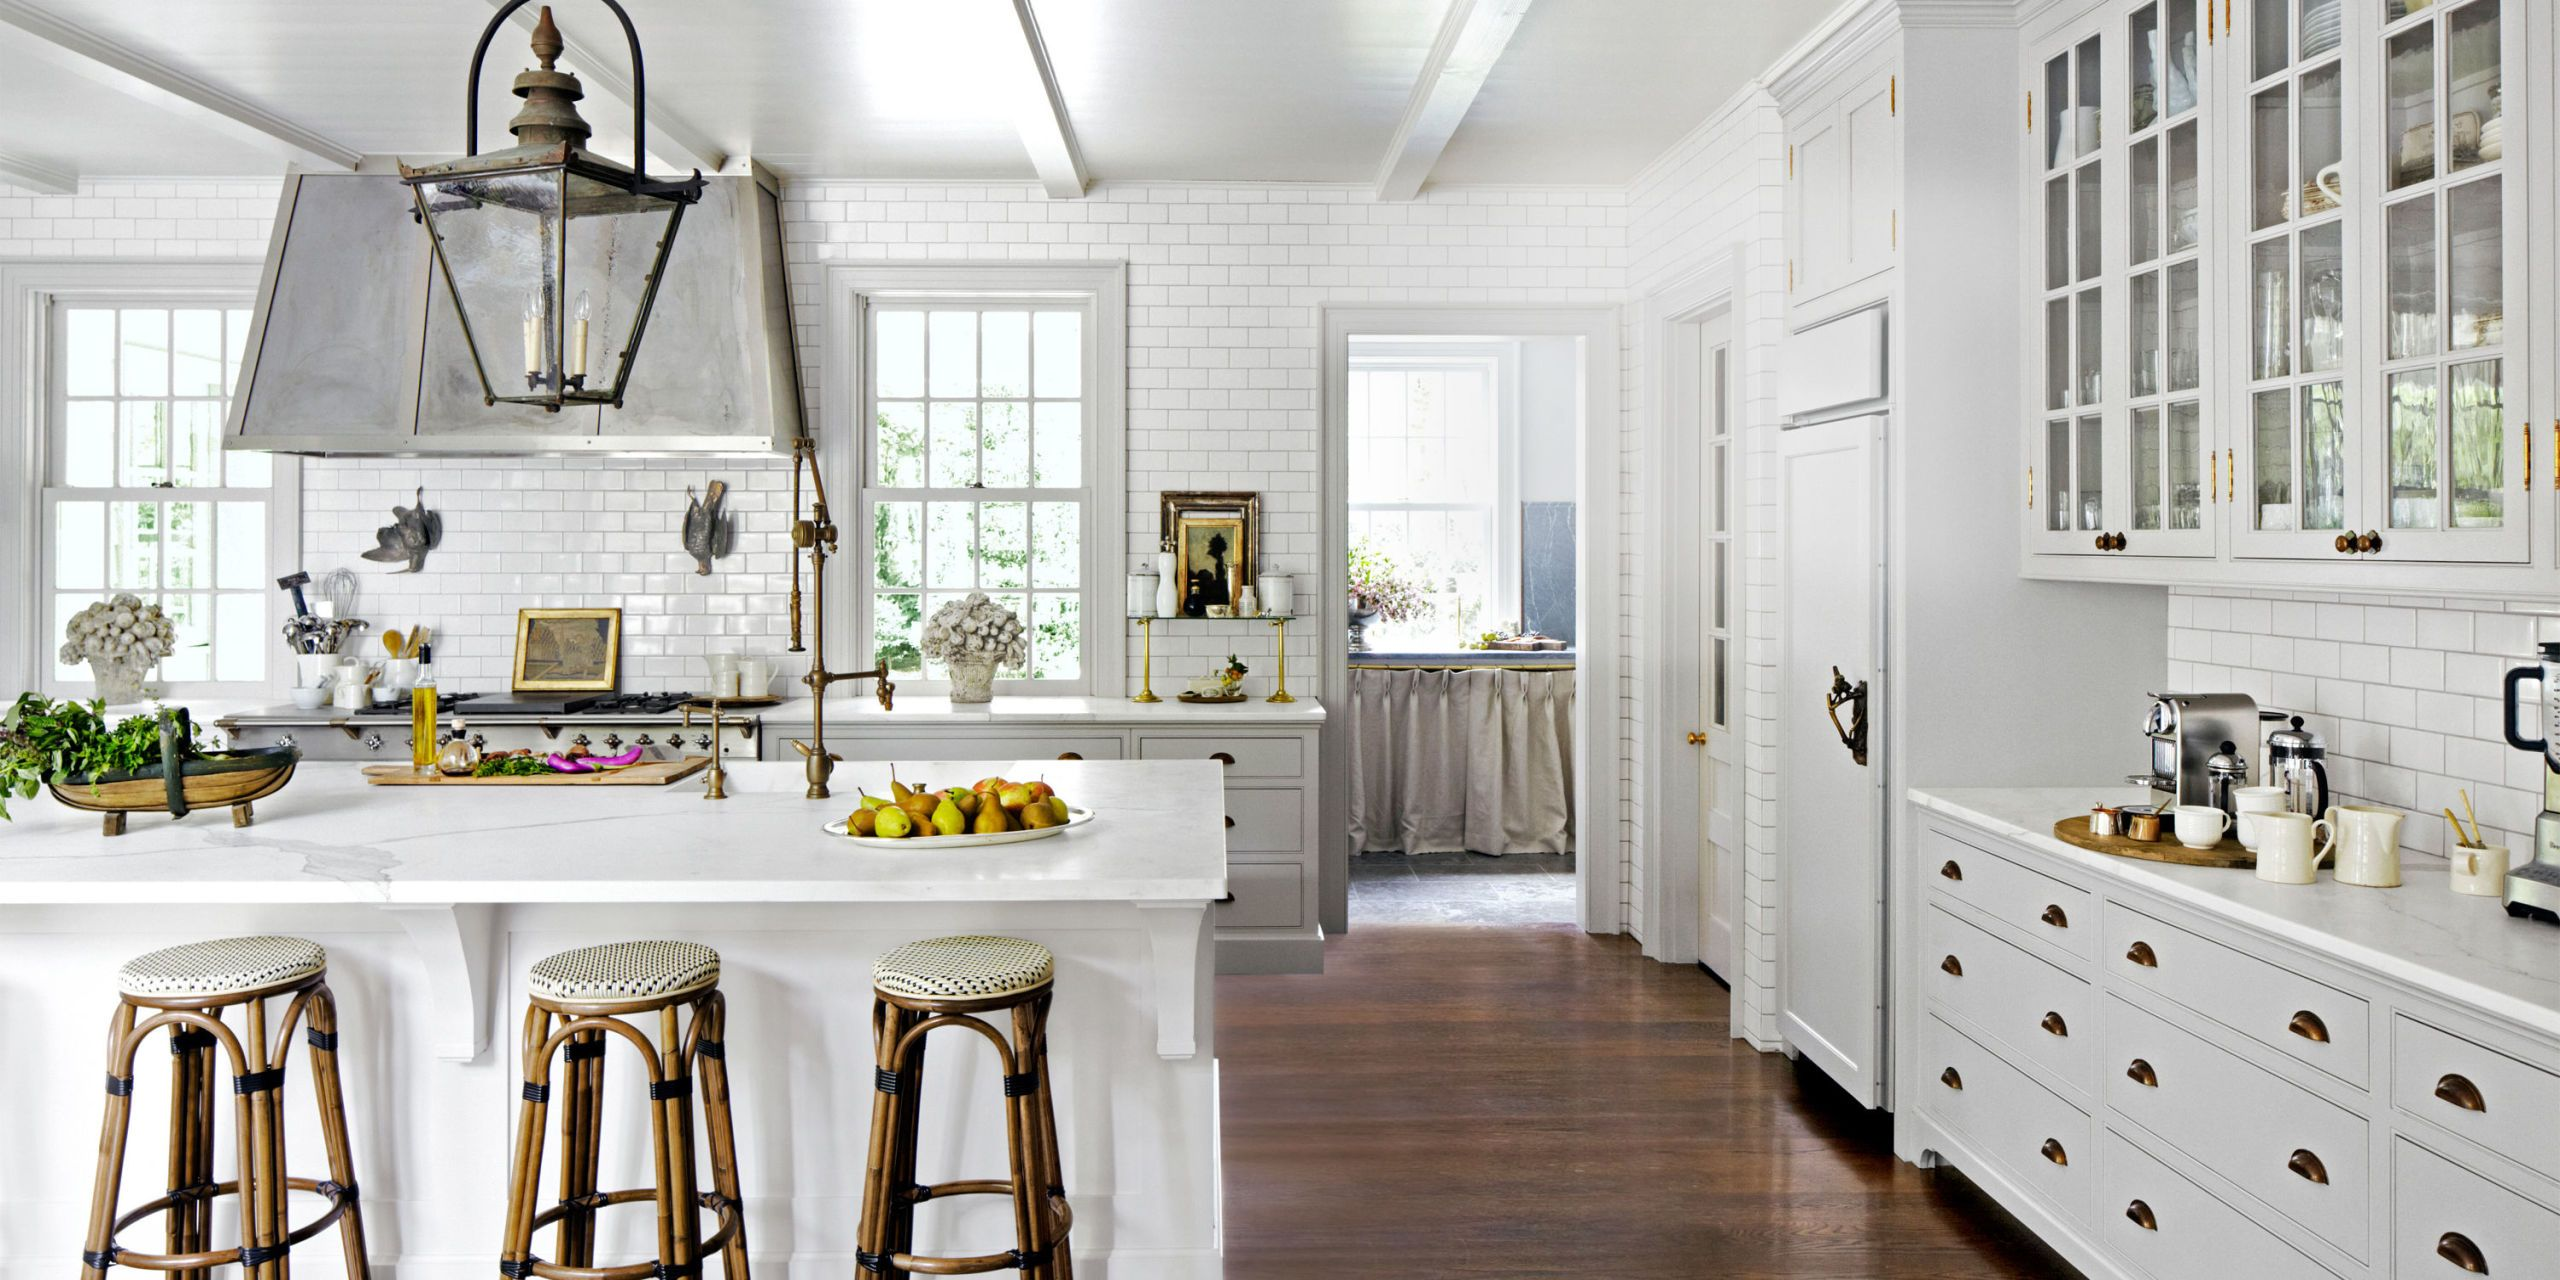 Amazing Ideas For Using White To Spruce Up Your Kitchen Decor And Take It  From Drab To Dazzling.